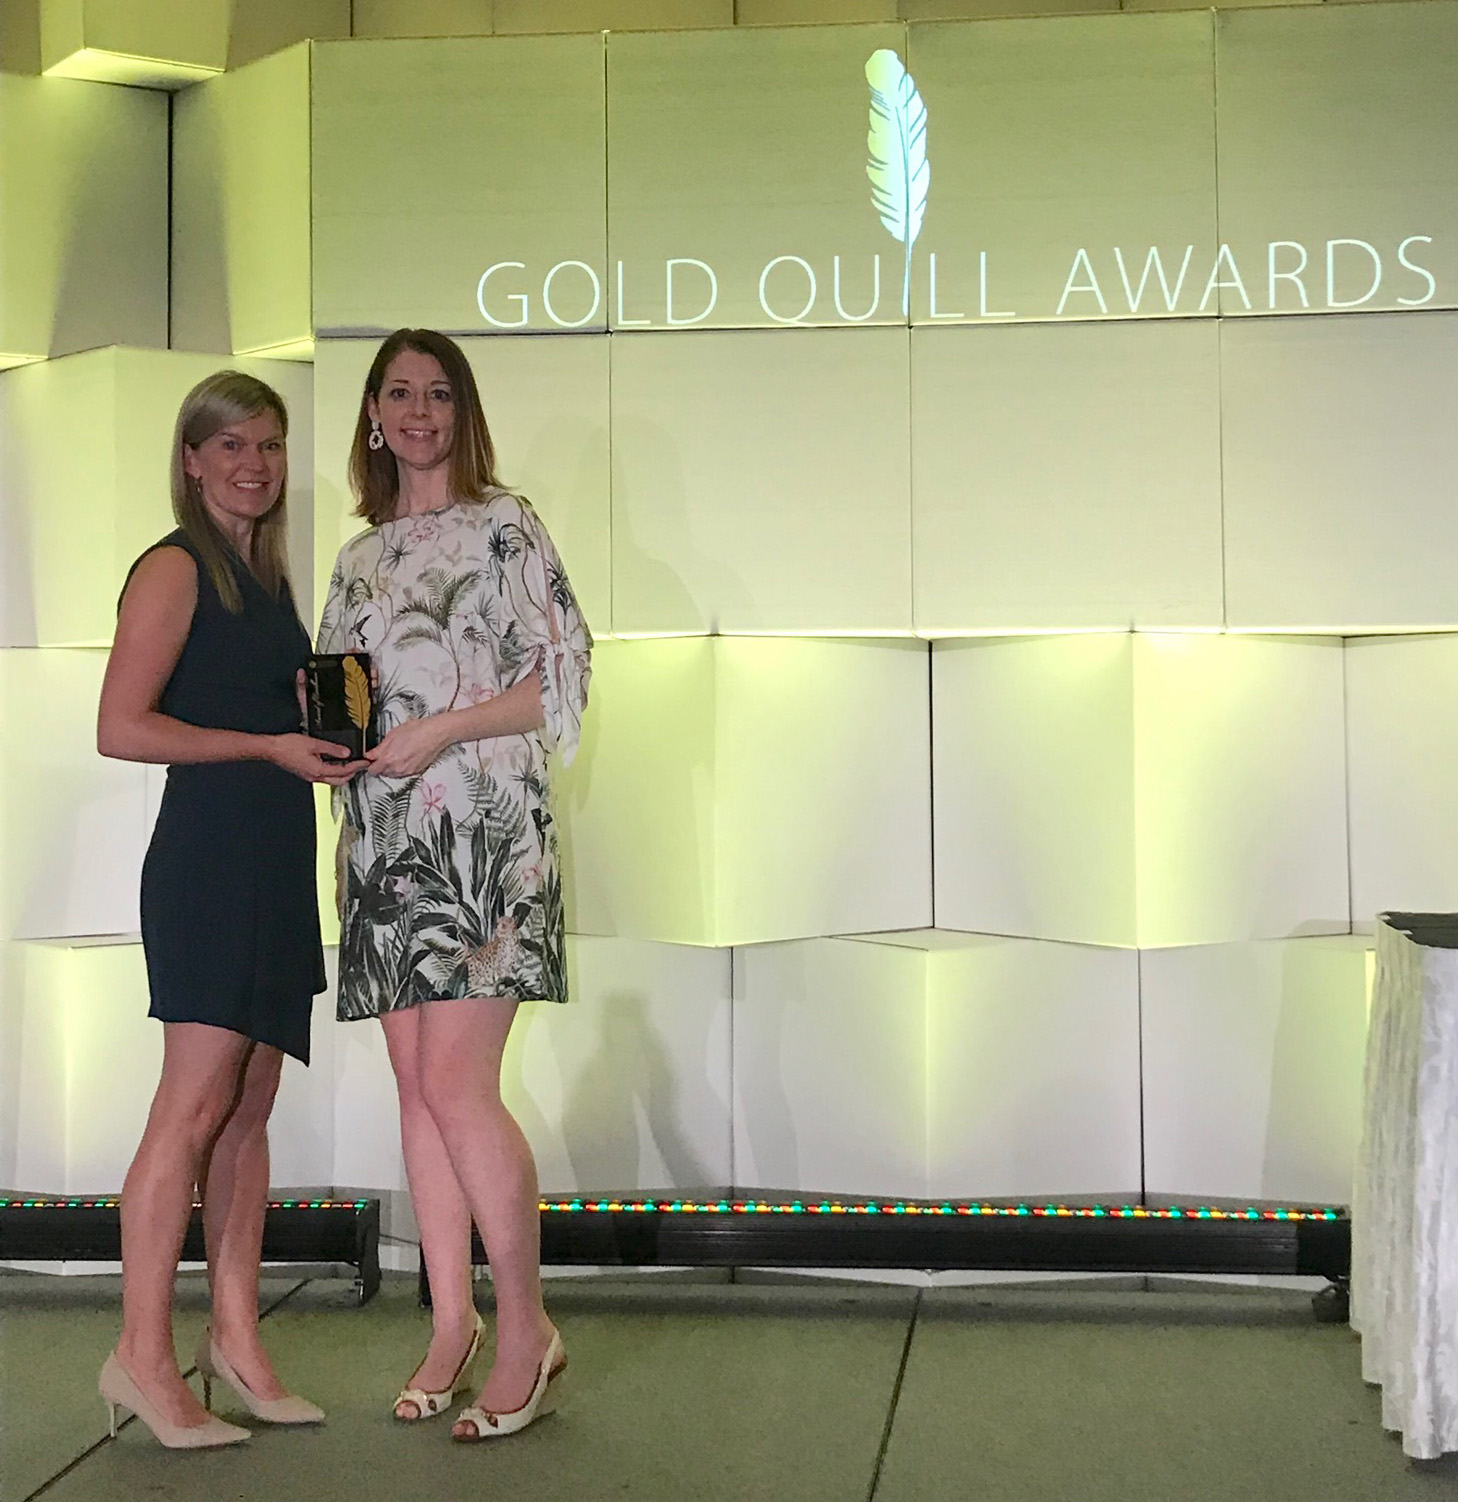 IABC Gold Quill Award